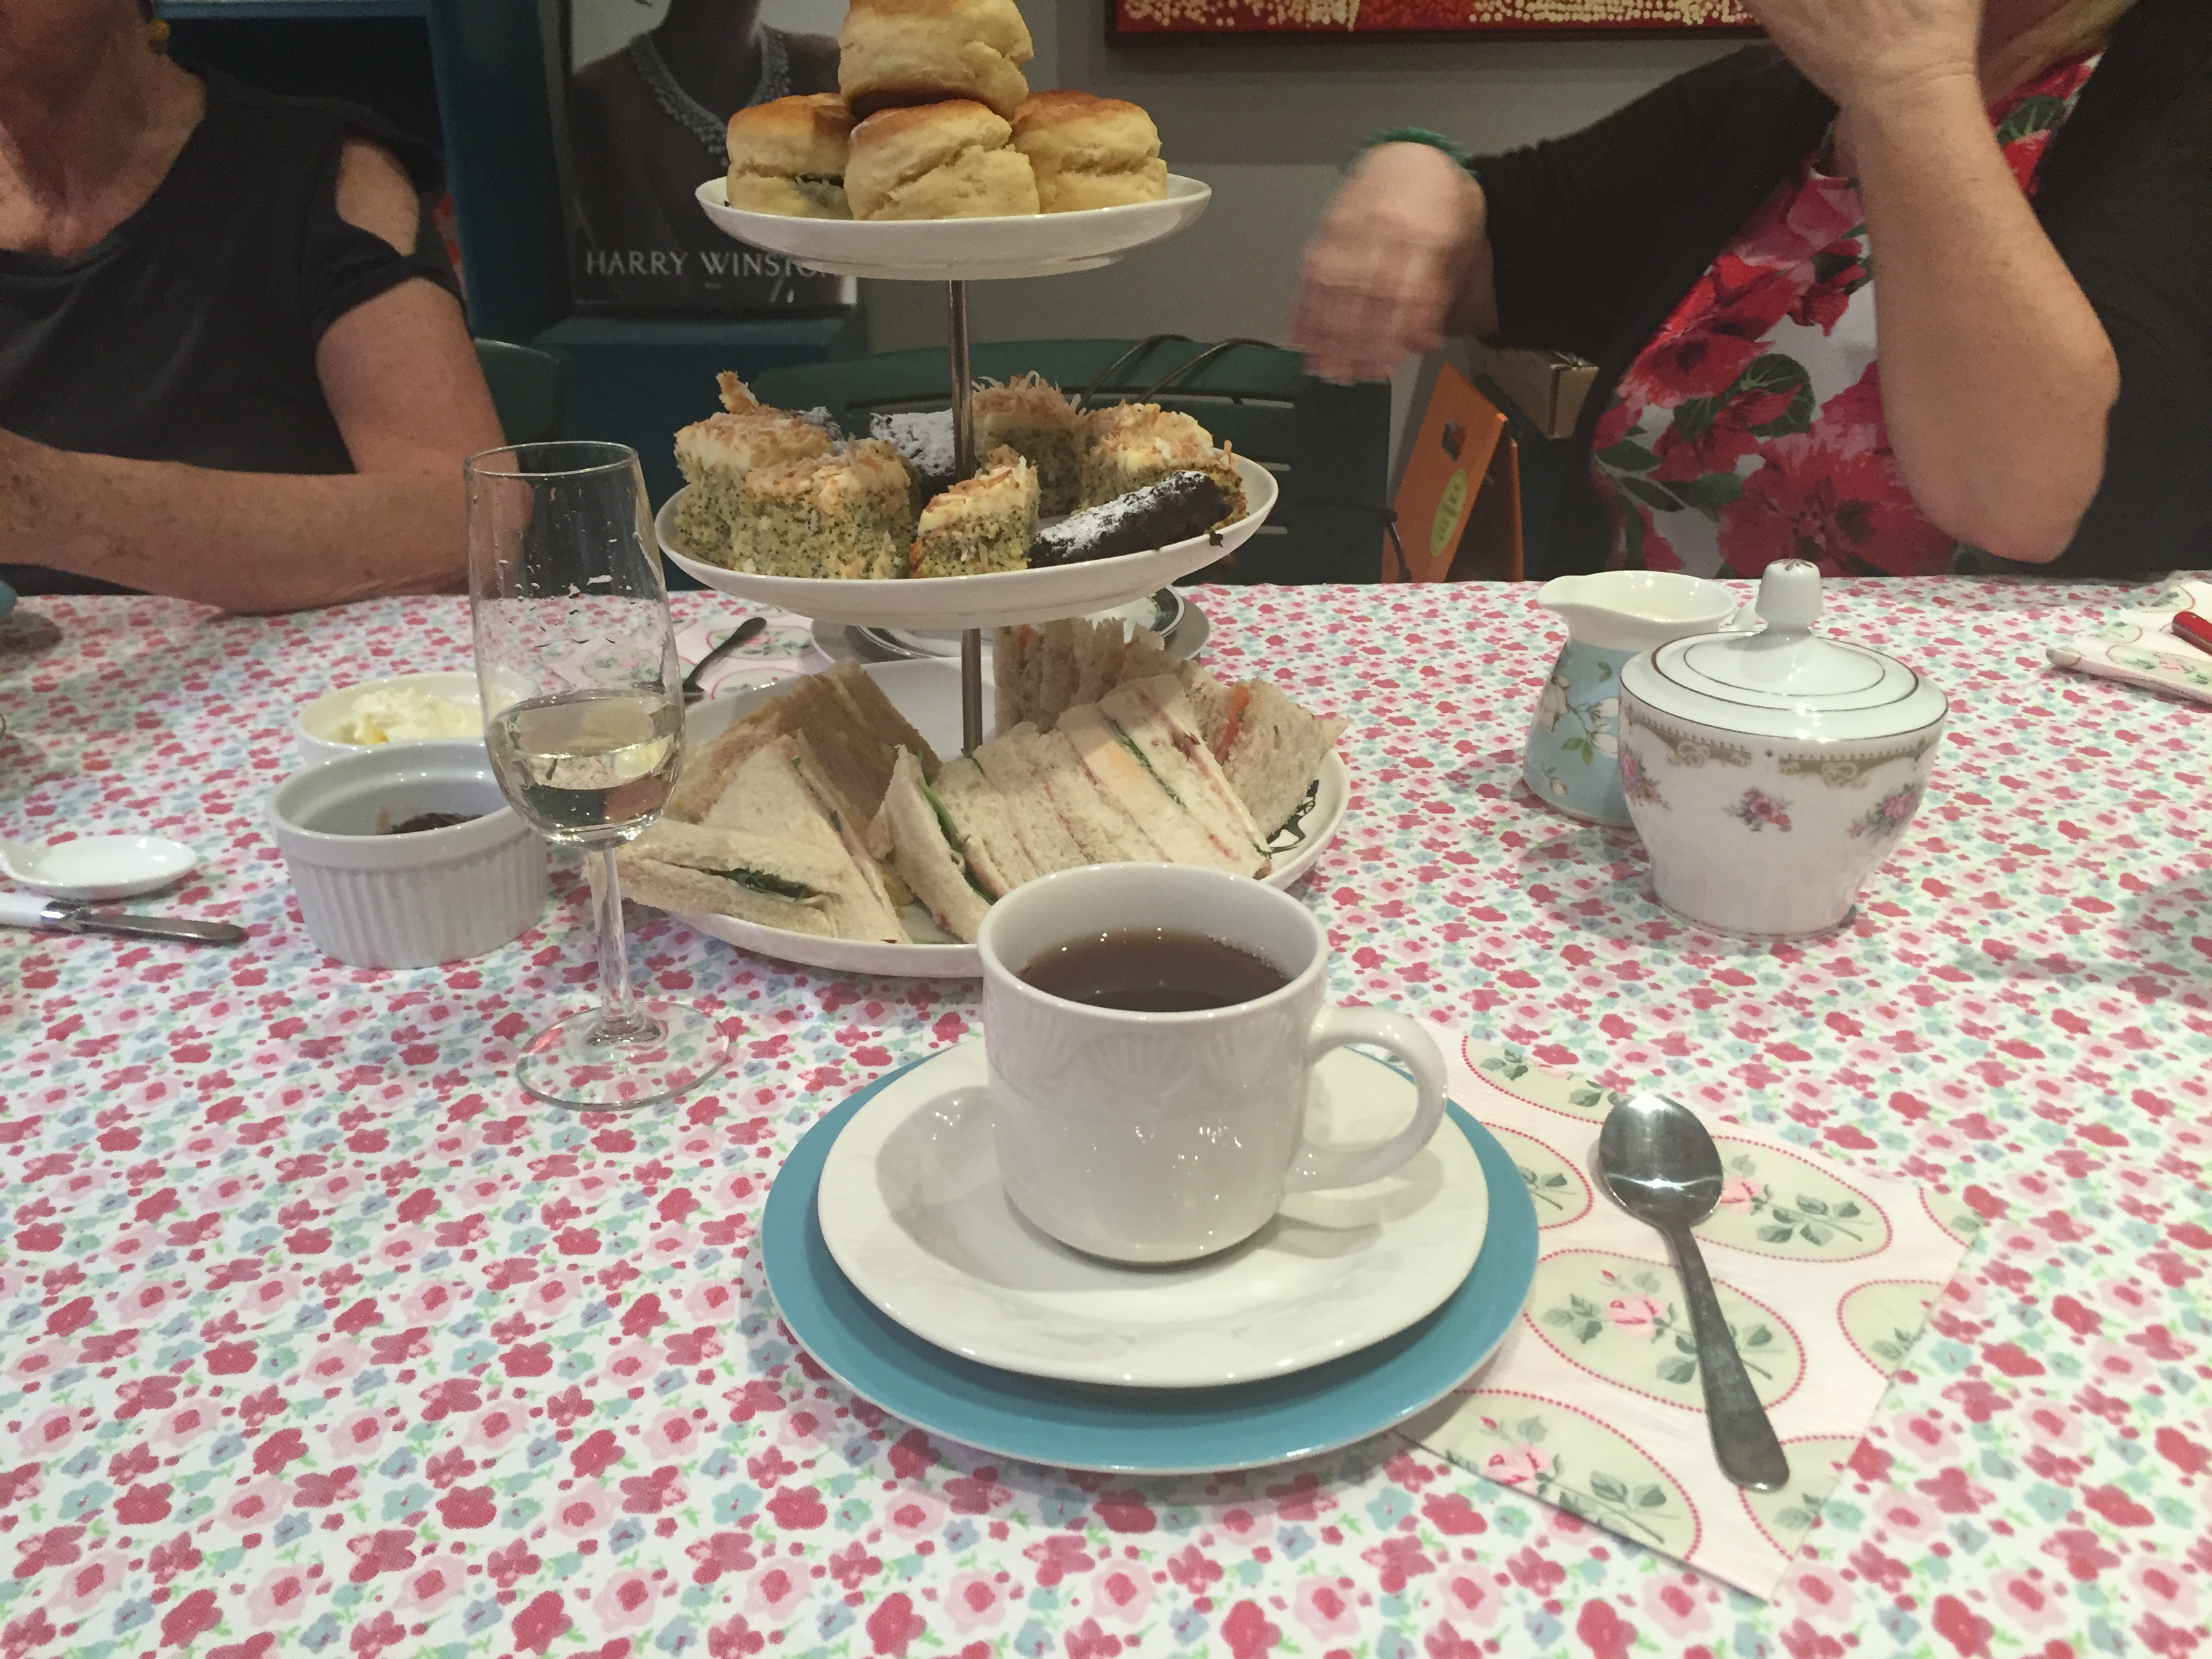 Photograph of a table with a cup of tea in a saucer in front of a three tier cake stand with high tea: cakes, scones and sandwiches